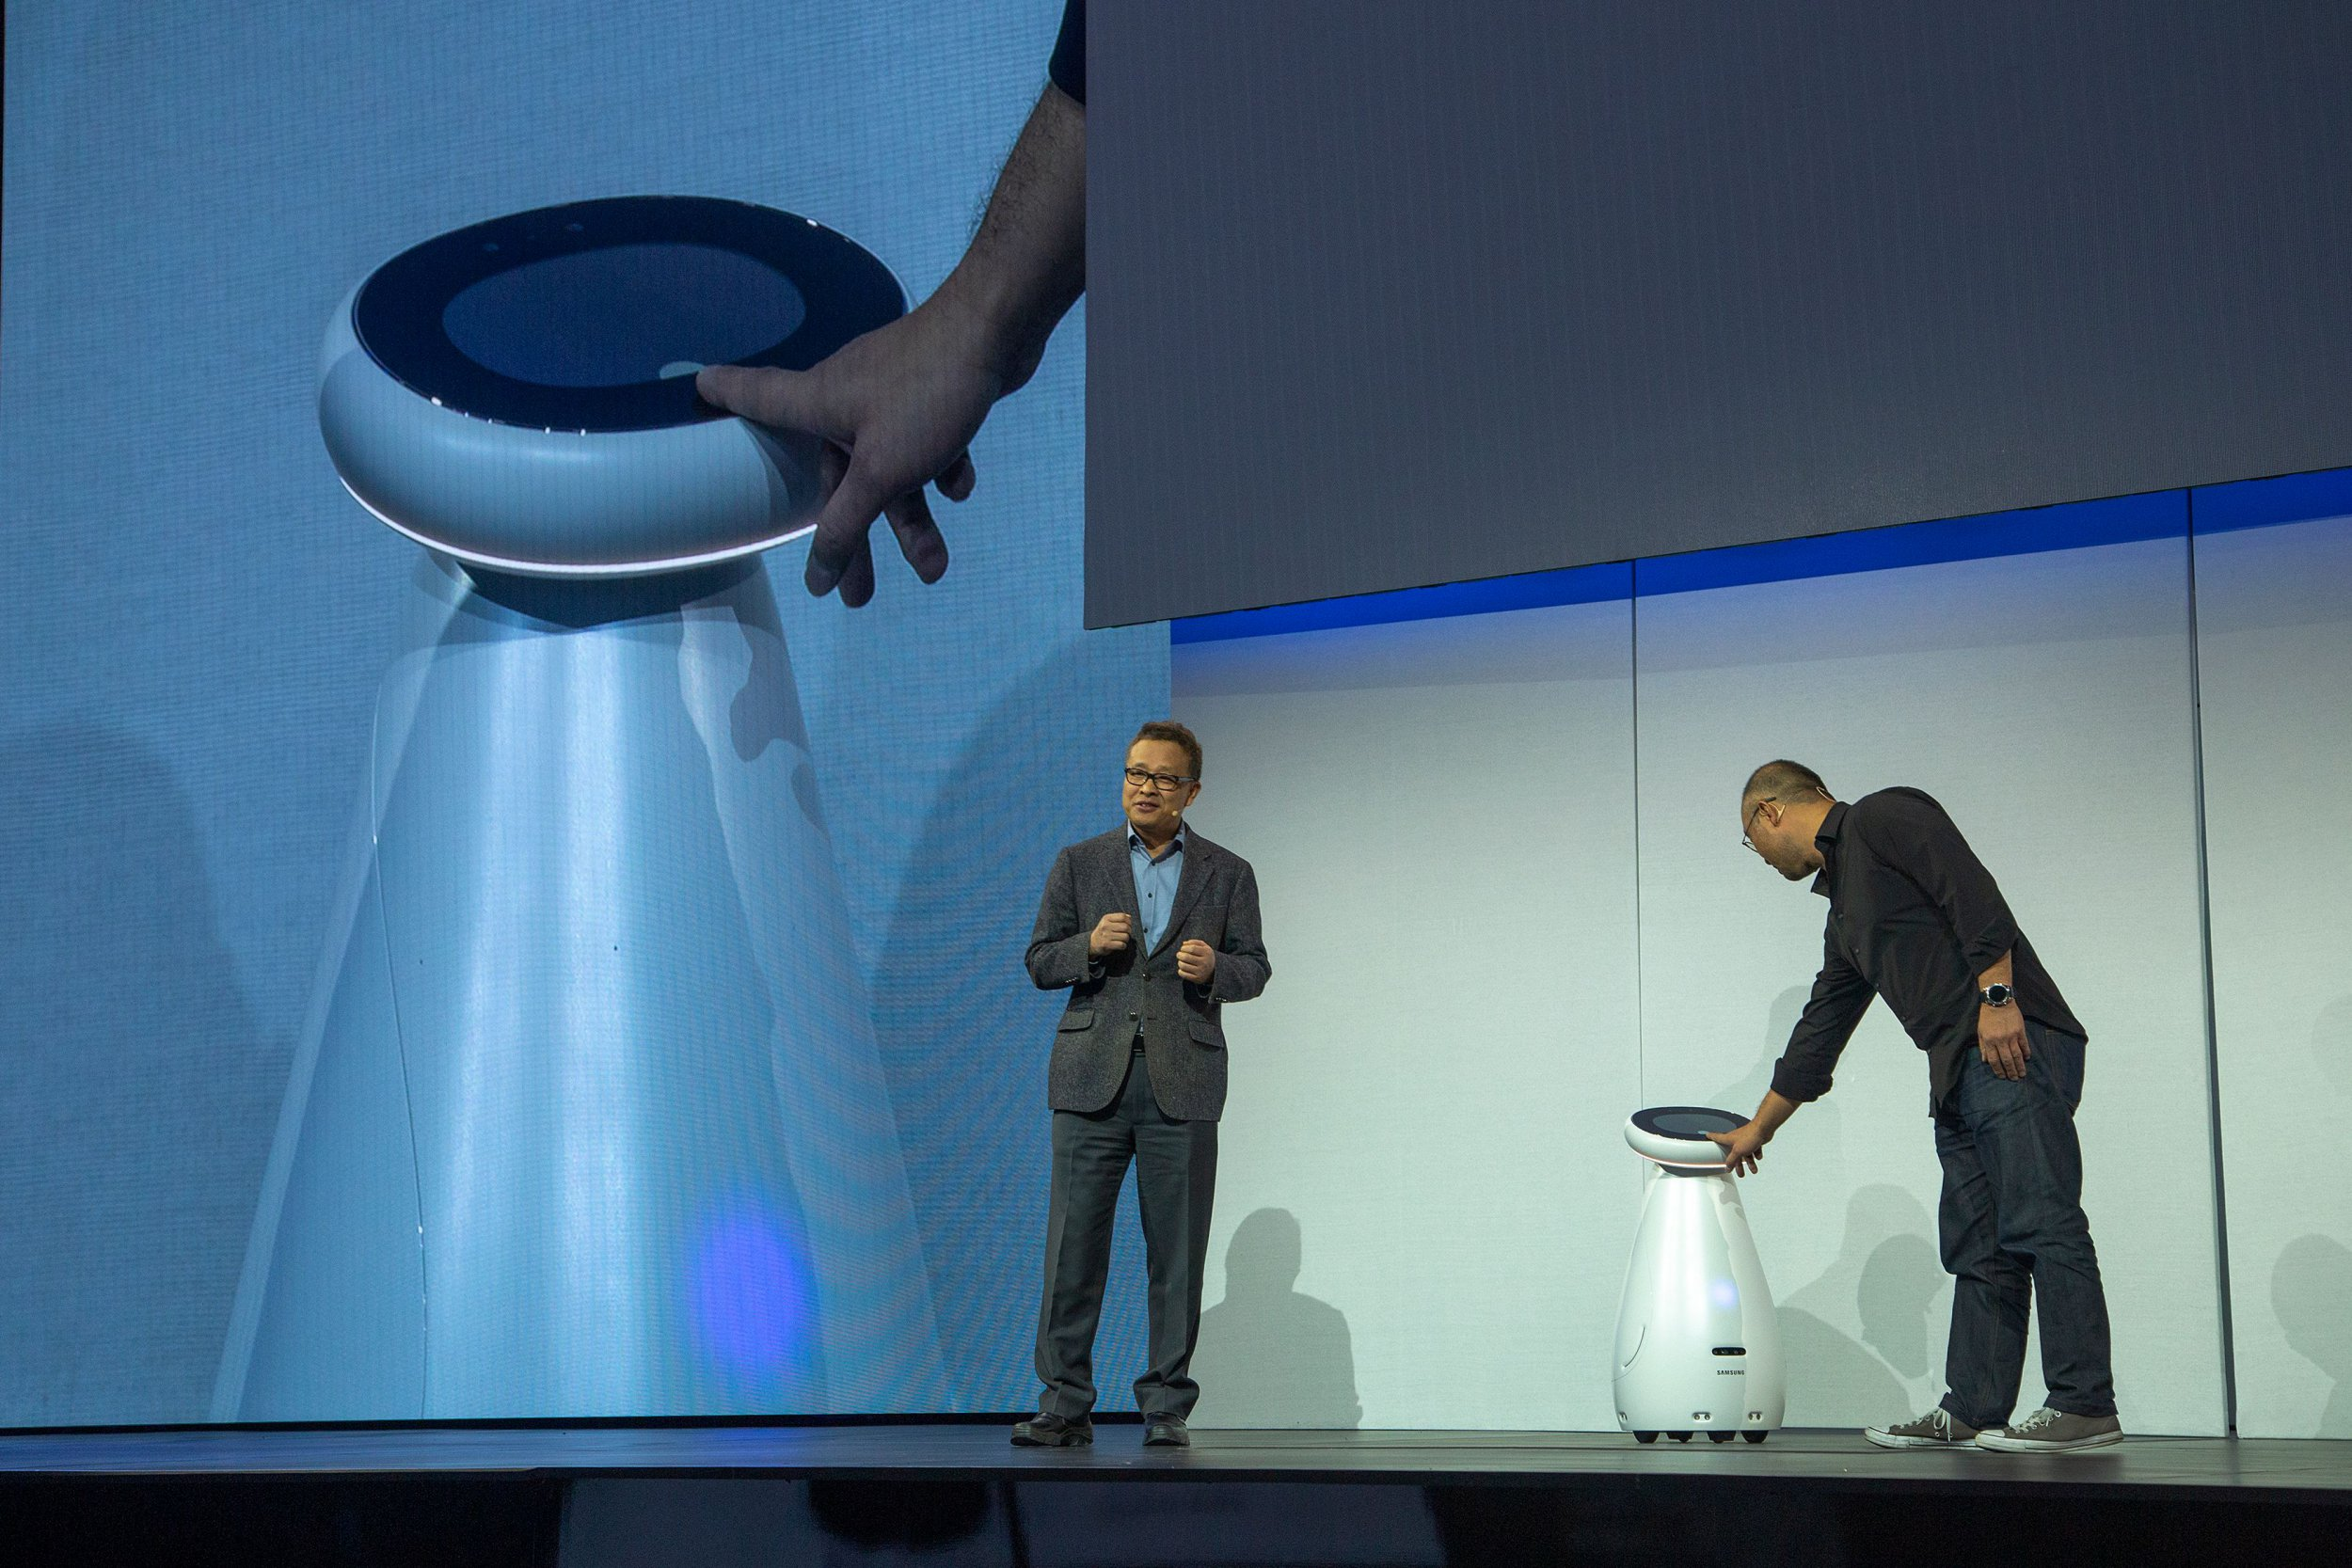 Samsung Electronics Senior Vice President Gary Lee (L) and Samsung Electronics America Senior Vice President Yoon Lee (R) demonstrate the Samsung Bot Care at the Samsung press conference at the Mandalay Bay Convention Center during CES 2019 in Las Vegas on January 7, 2019. (Photo by DAVID MCNEW / AFP)DAVID MCNEW/AFP/Getty Images